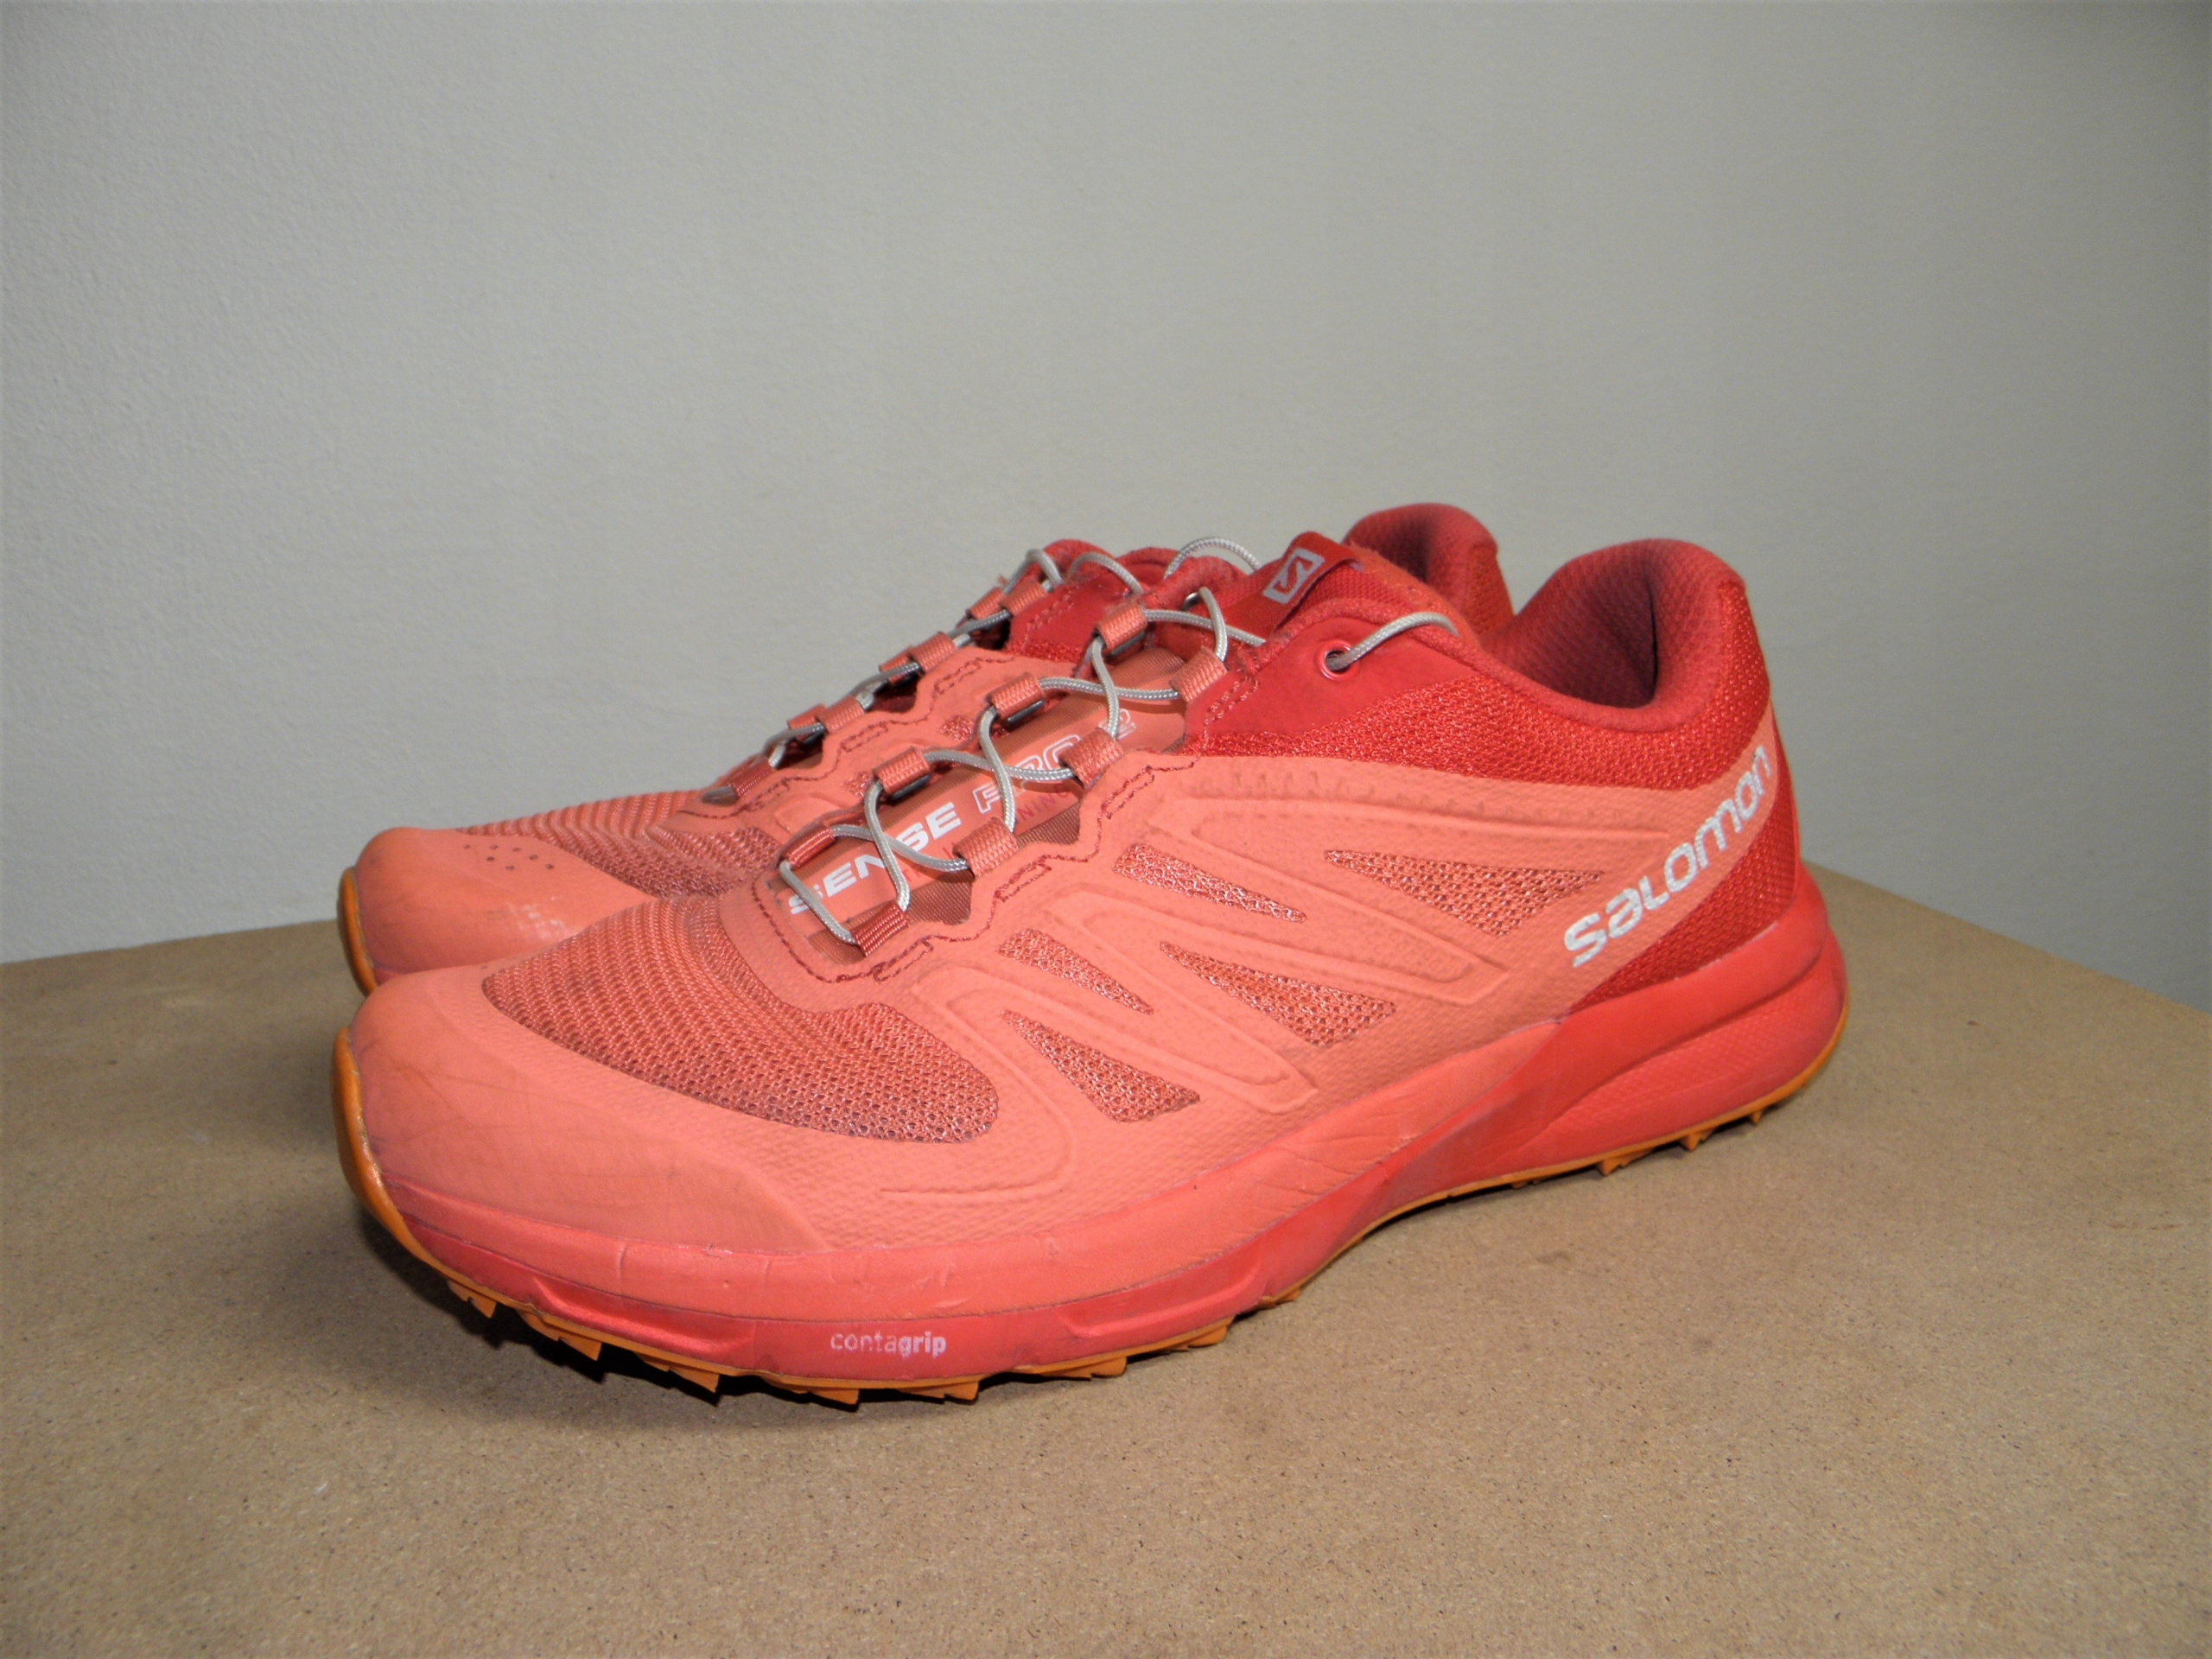 SALOMON SENSE PRO 2 Buty do biega._r.38 2/3 eu